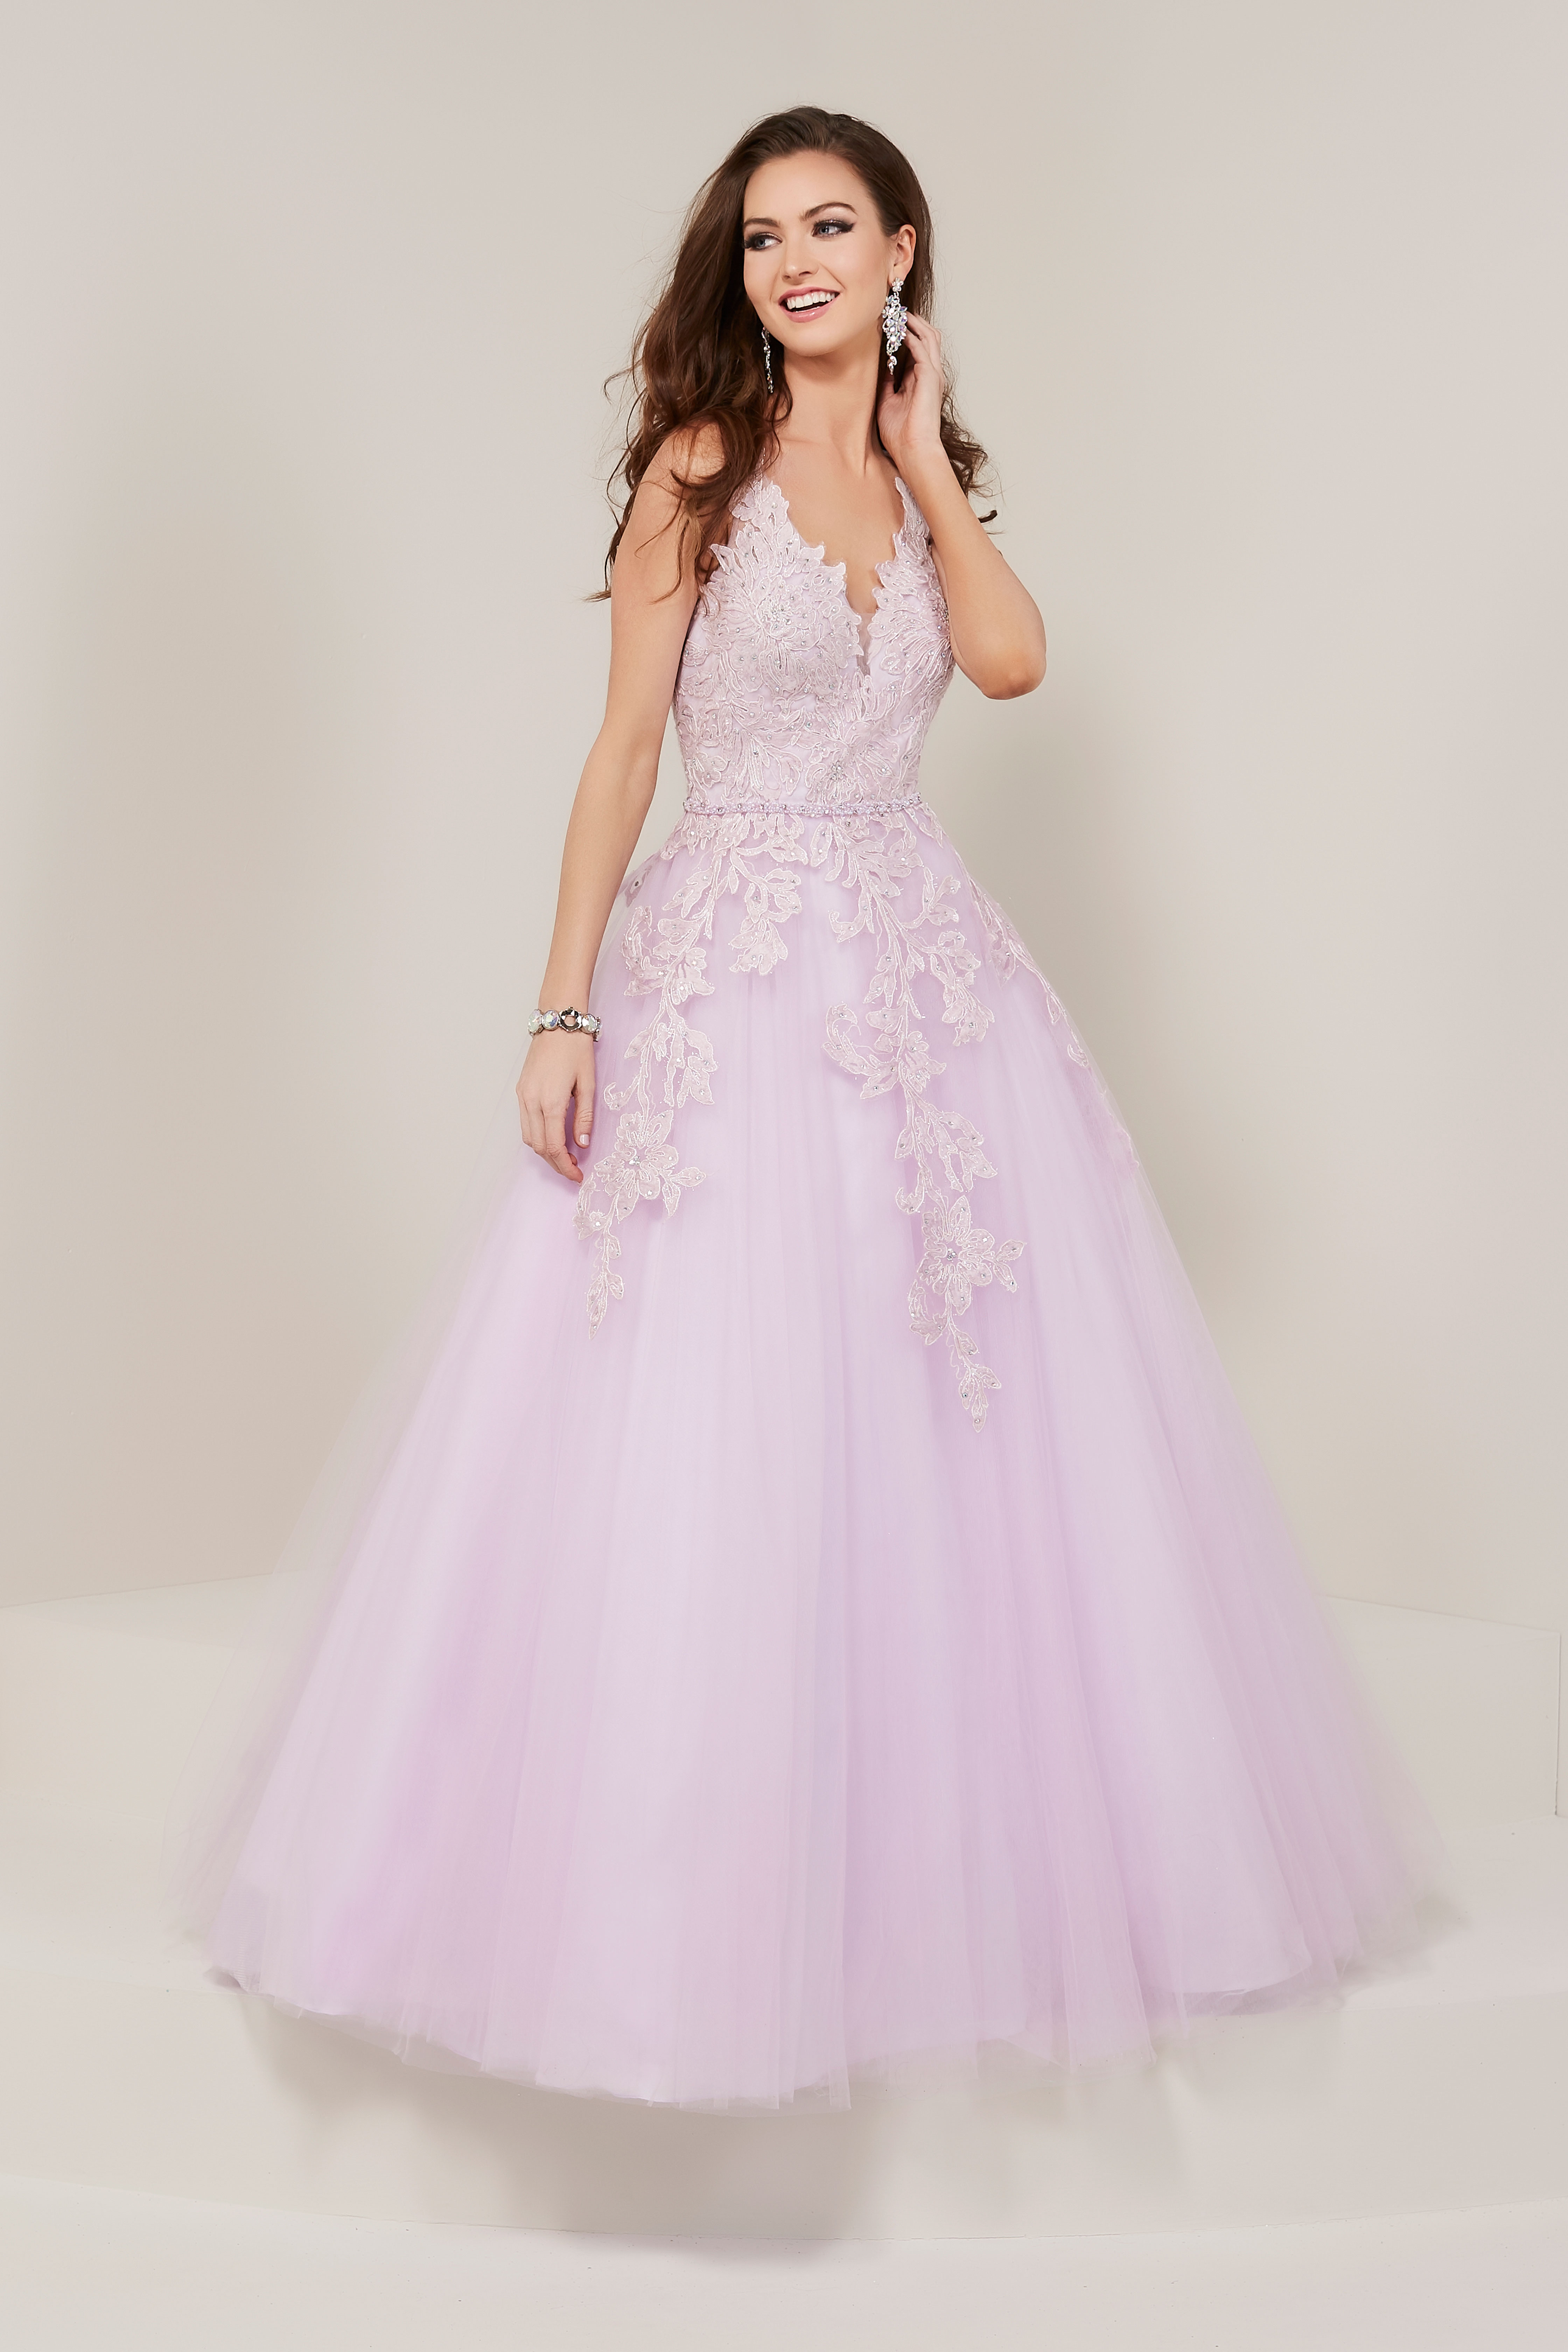 34a470c599cb Long Prom Dress With Open Back Lace Applique Bodice - PostParc